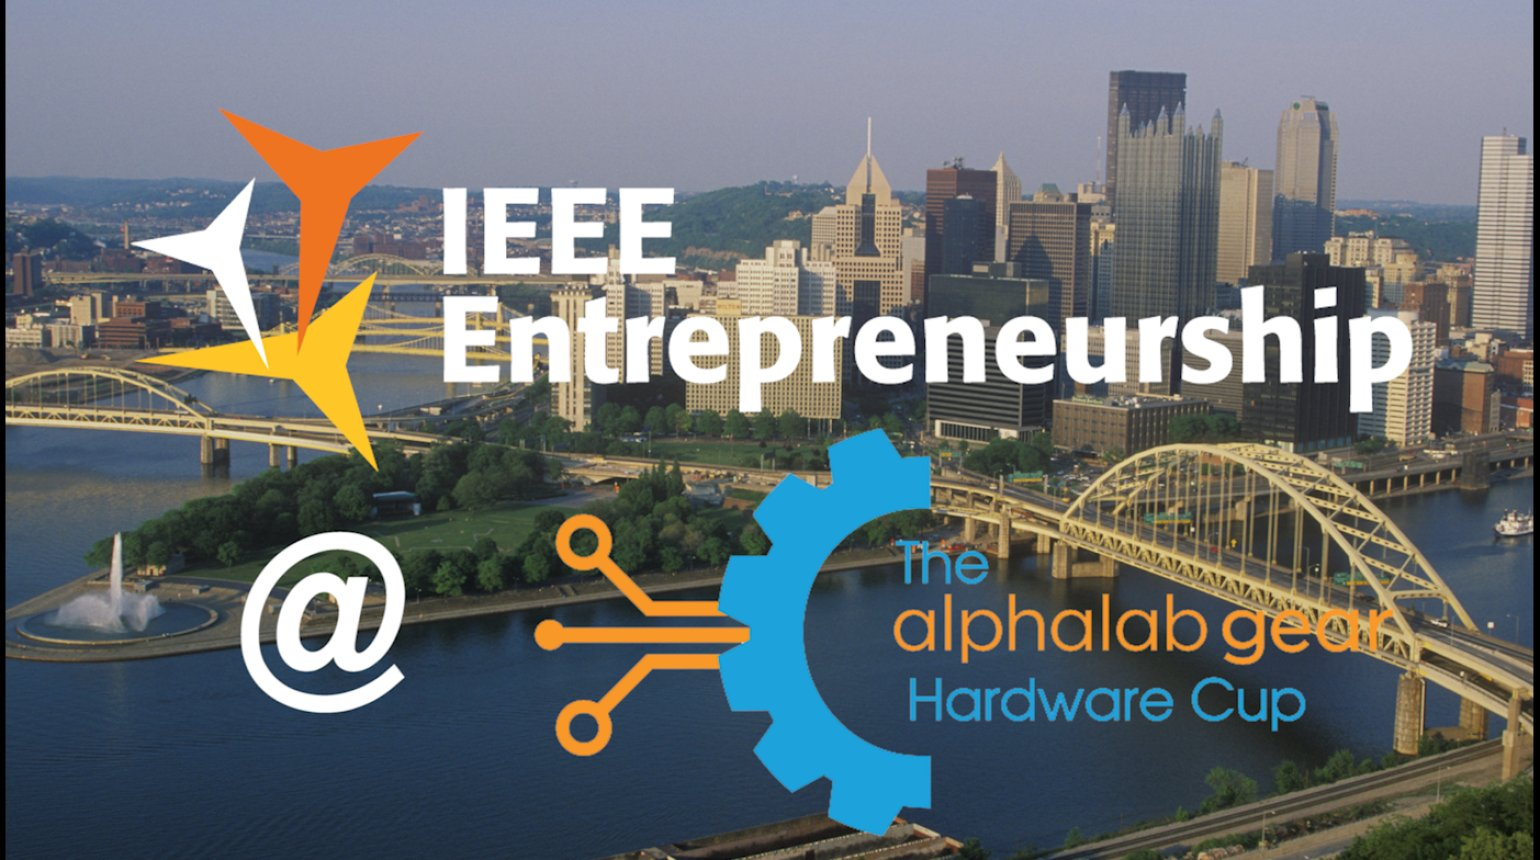 IEEE Entrepreneurship @ The 2017 AlphaLab Gear Hardware Cup International Finals